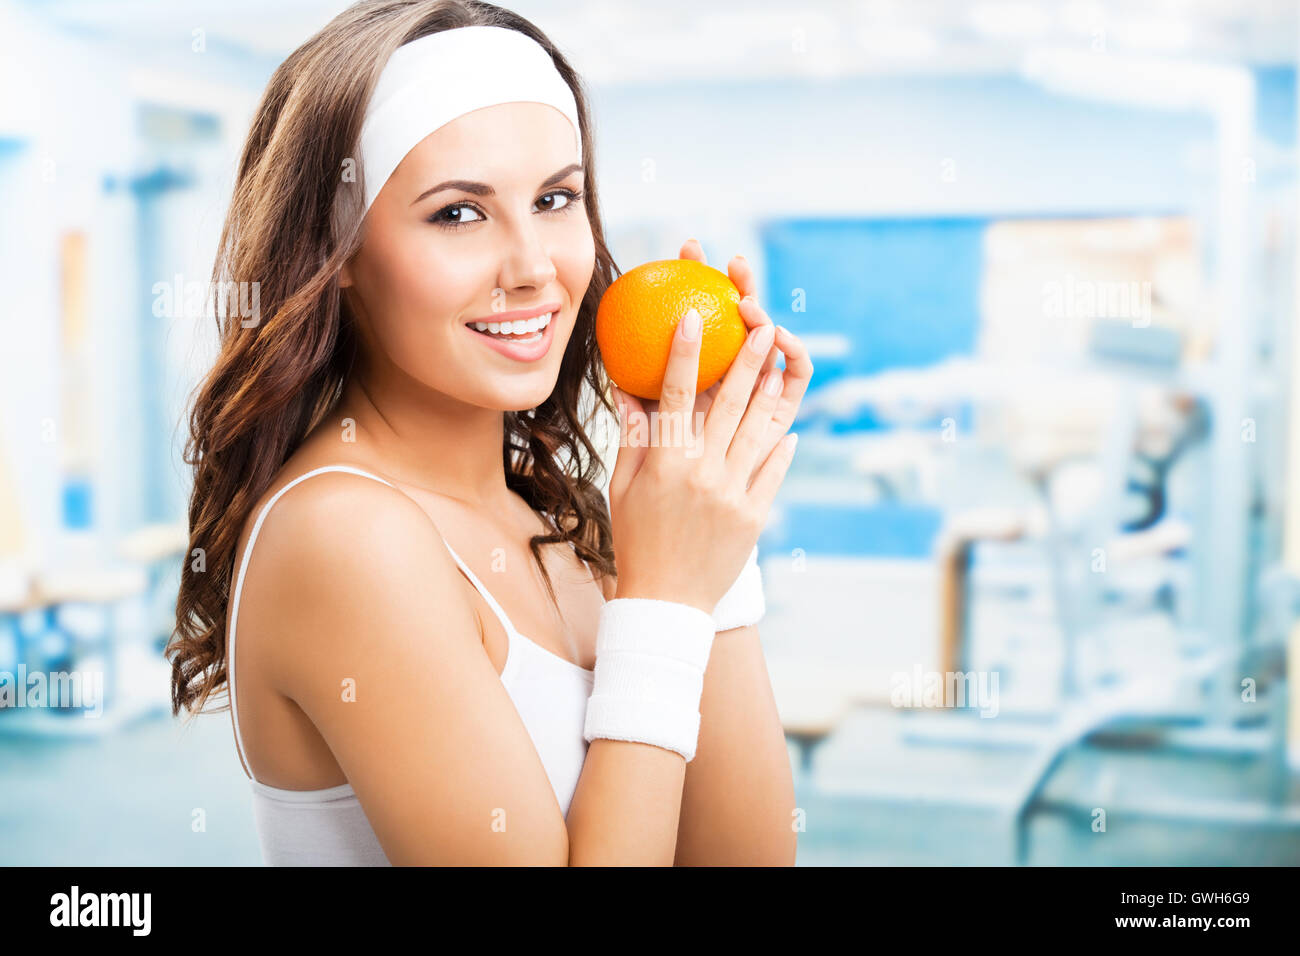 Portrait of happy smiling lovely woman with orange, at fitness center or gym - Stock Image